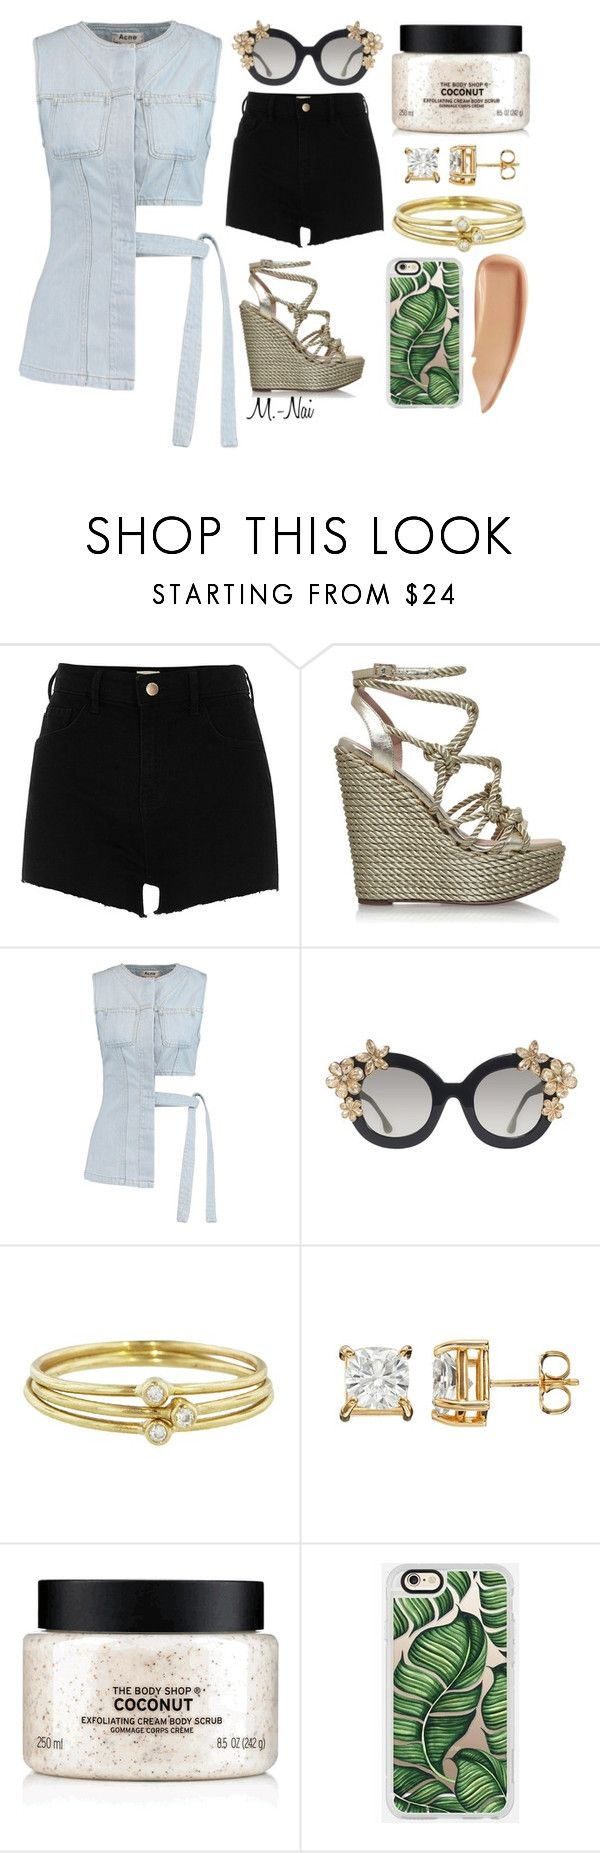 """Tourist"" by naimullins on Polyvore featuring River Island, KG Kurt Geiger, Acne Studios, Alice + Olivia, Jennifer Meyer Jewelry, The Body Shop, Casetify and Sisley"